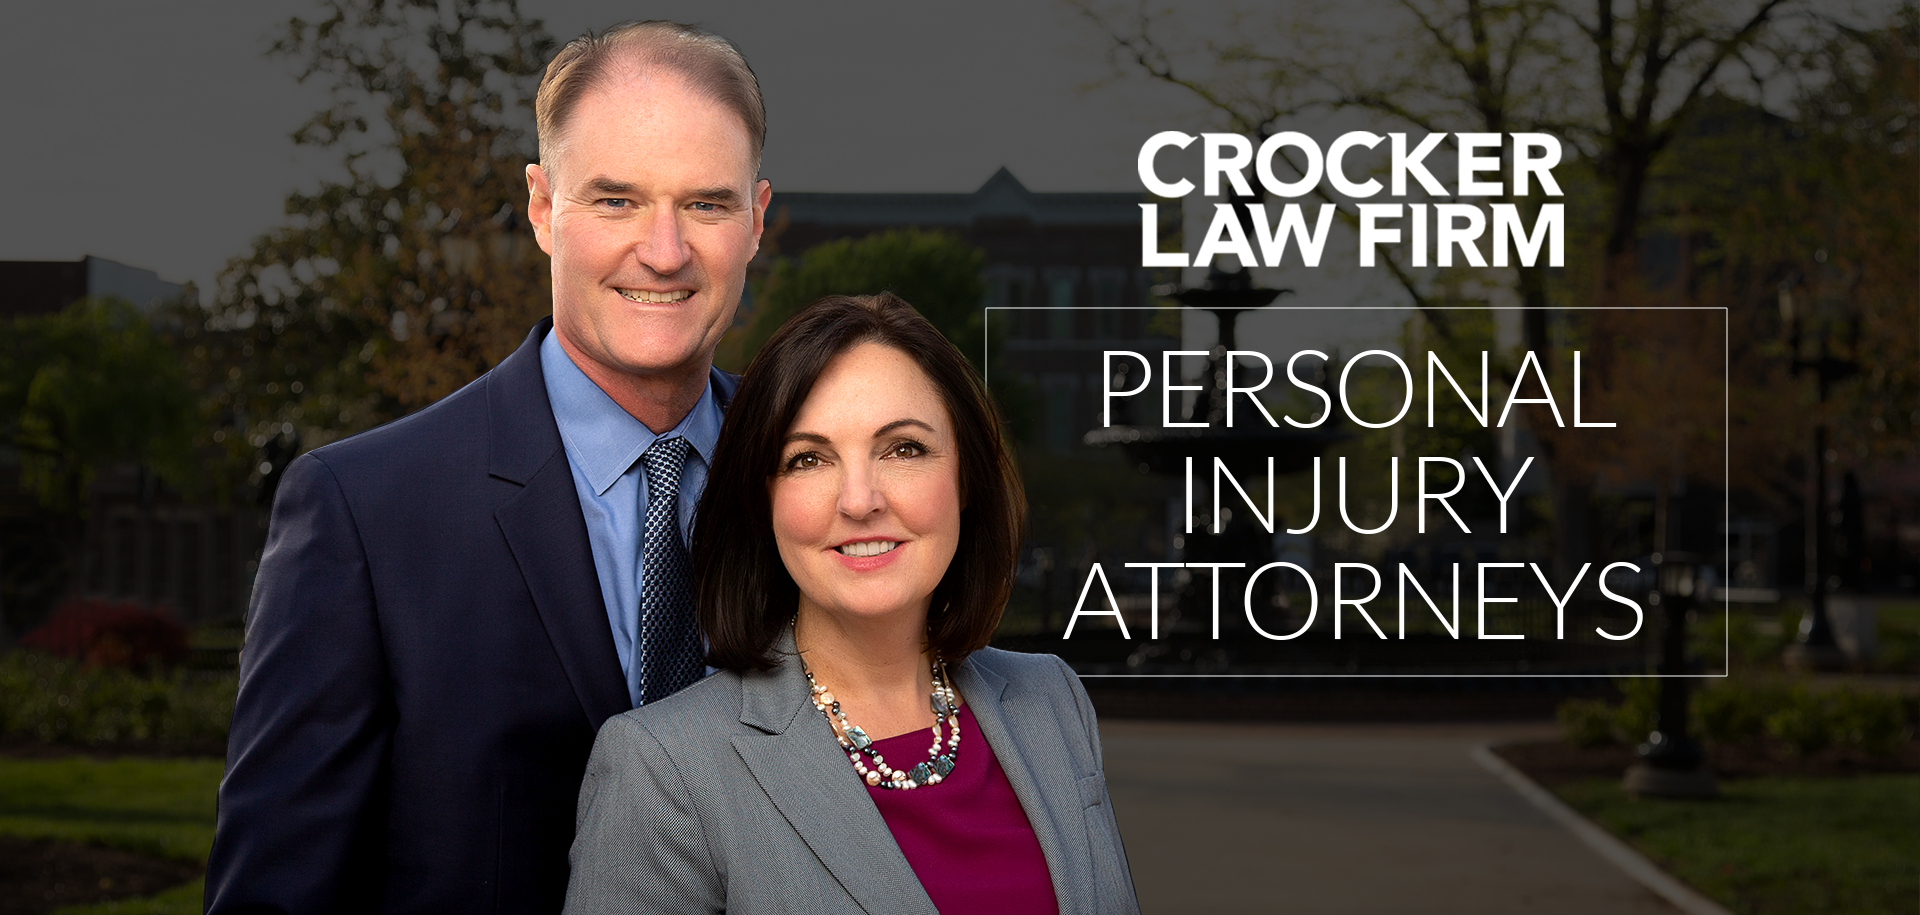 Ben and Cyndi Crocker Partner Attorneys at Crocker Law Firm Personal Injury Attorneys smile at fountain square park with 'Personal Injury Attorneys' text